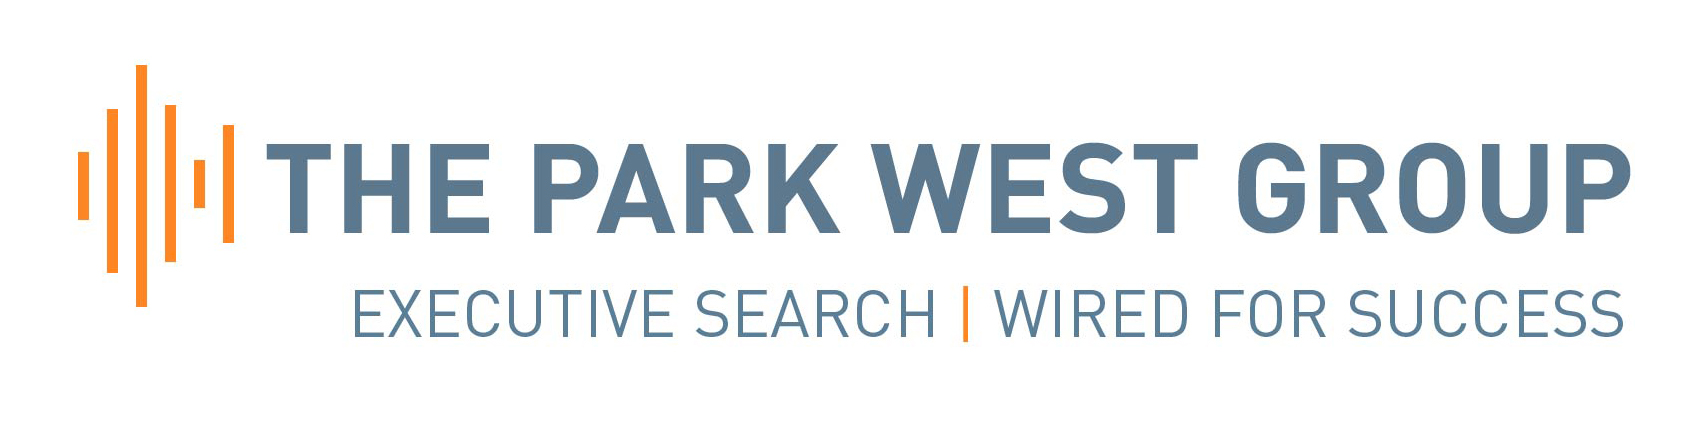 The Park West Group Logo